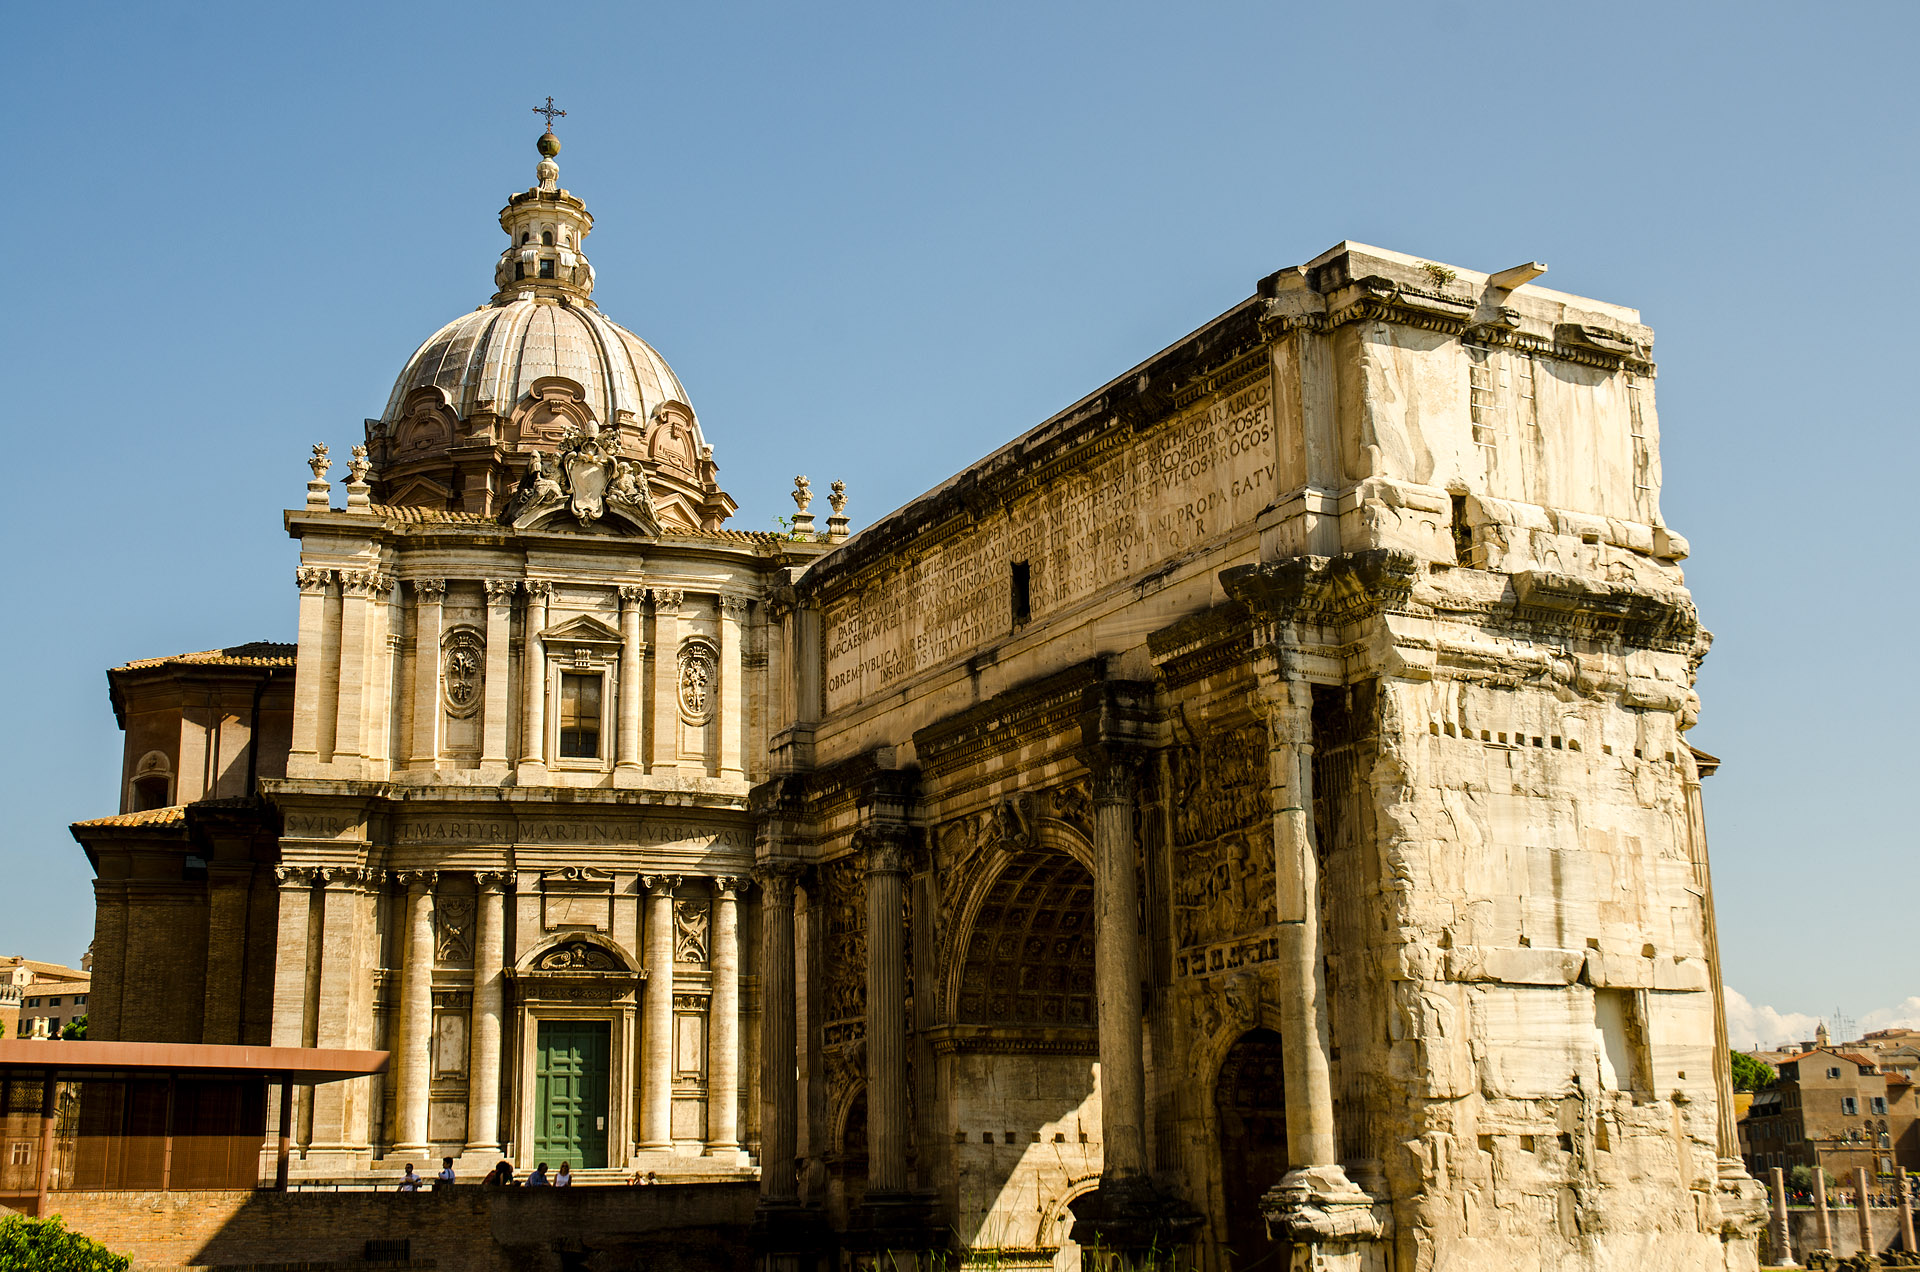 Arch of Septimius Severus & Church of St. Luke and St. Martina